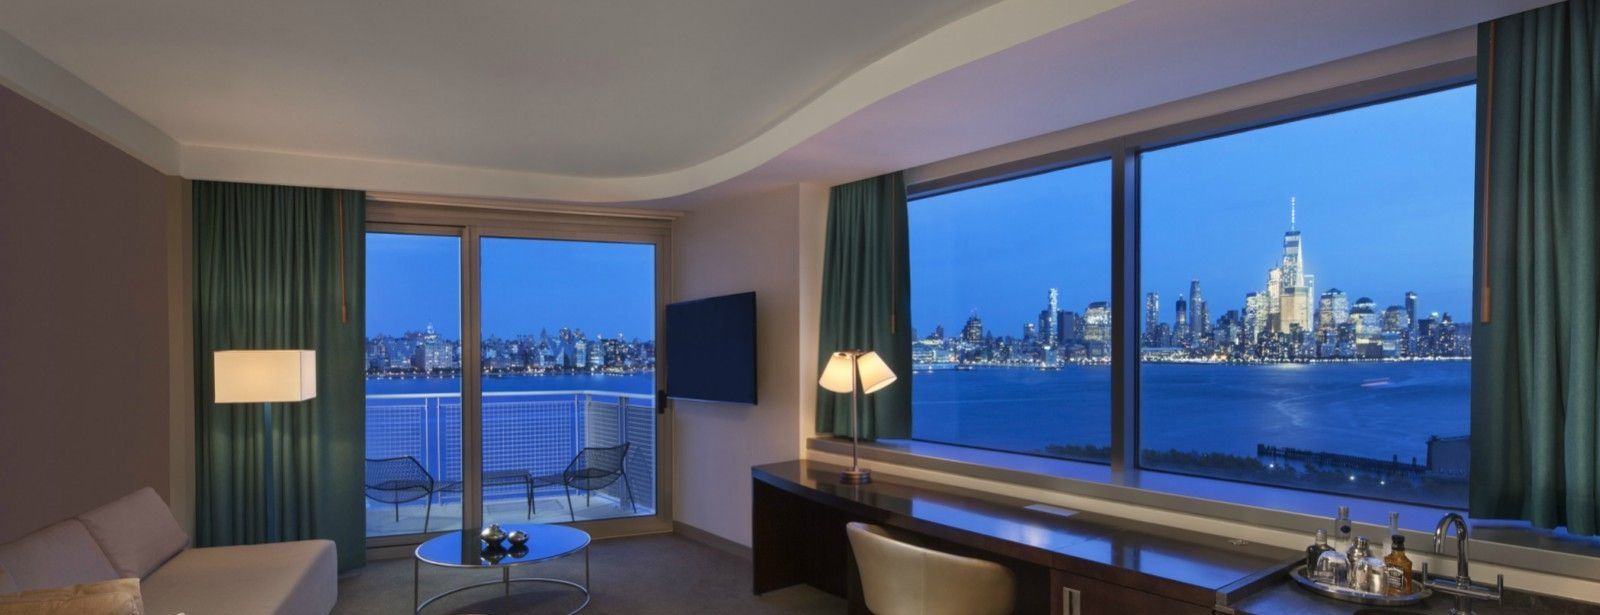 Hoboken Accommodations